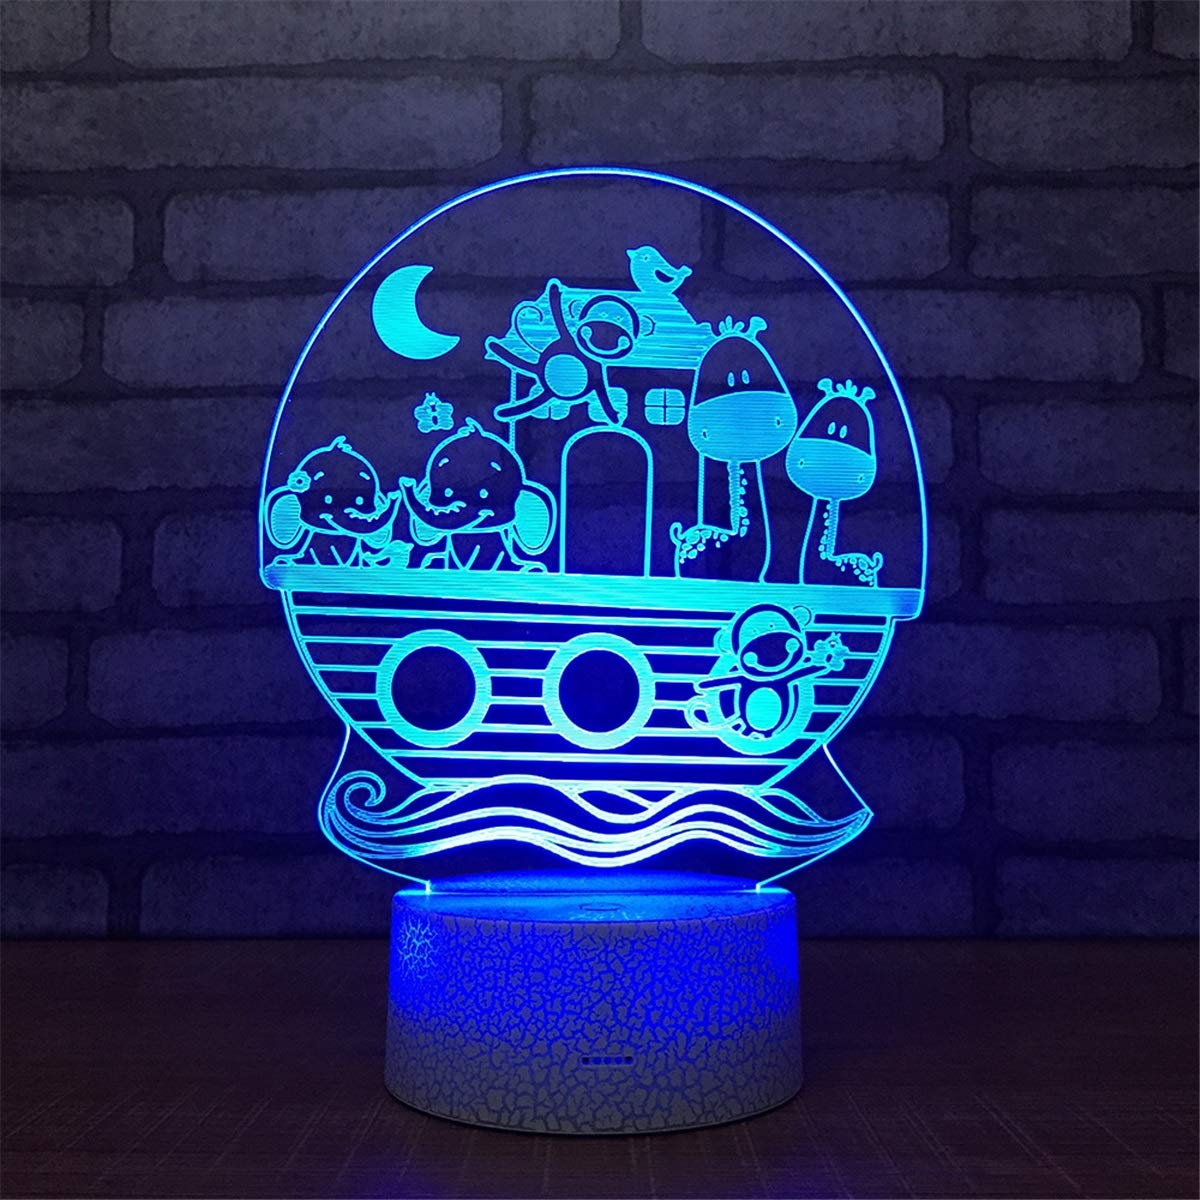 USB Powered Stunning Animal 7 Colors Remote Control Optical Illusion Night Light Crackle Paint Base Table Desk Lamps 3D Glow LED Lamp Art Sculpture Lights Toy for Kids Gifts